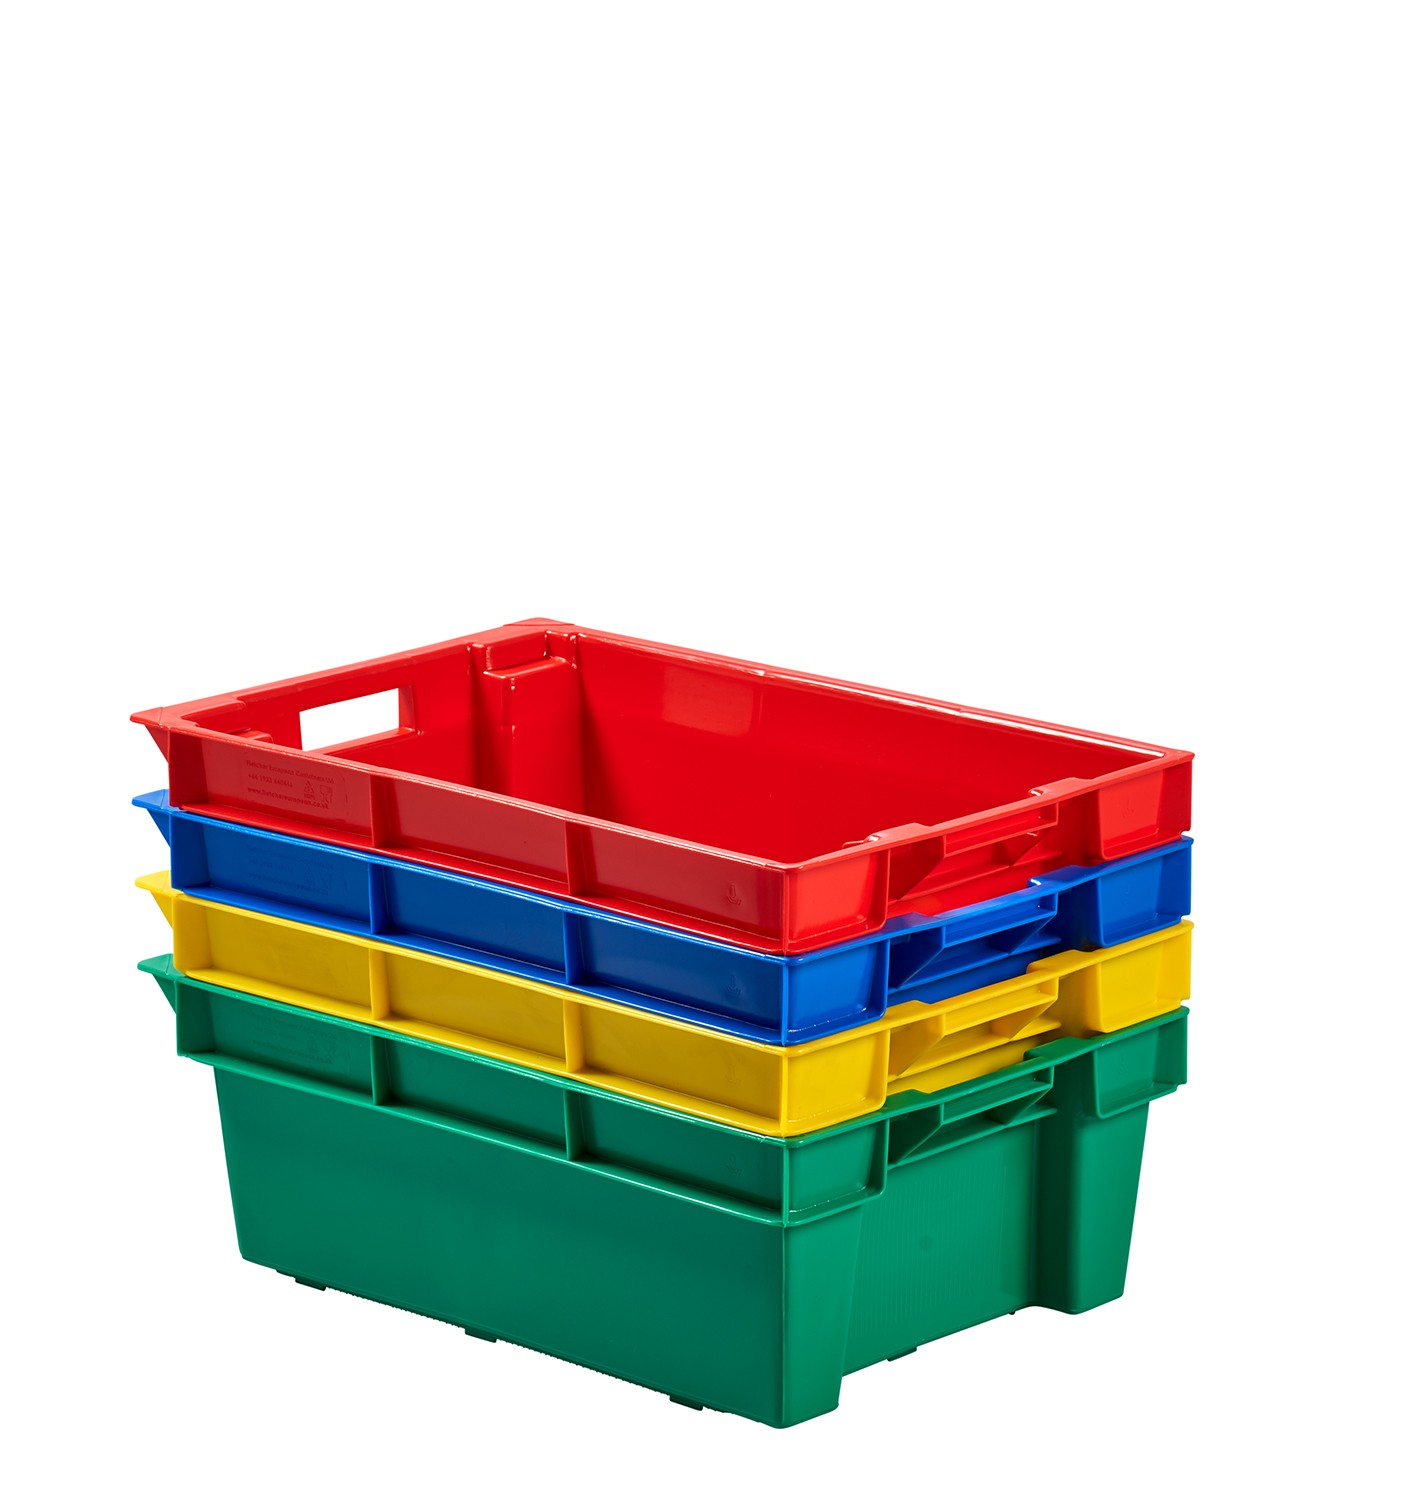 Plastikkisten Stapelbar Stack Nest Plastic Container - Plastic Stacking Boxes